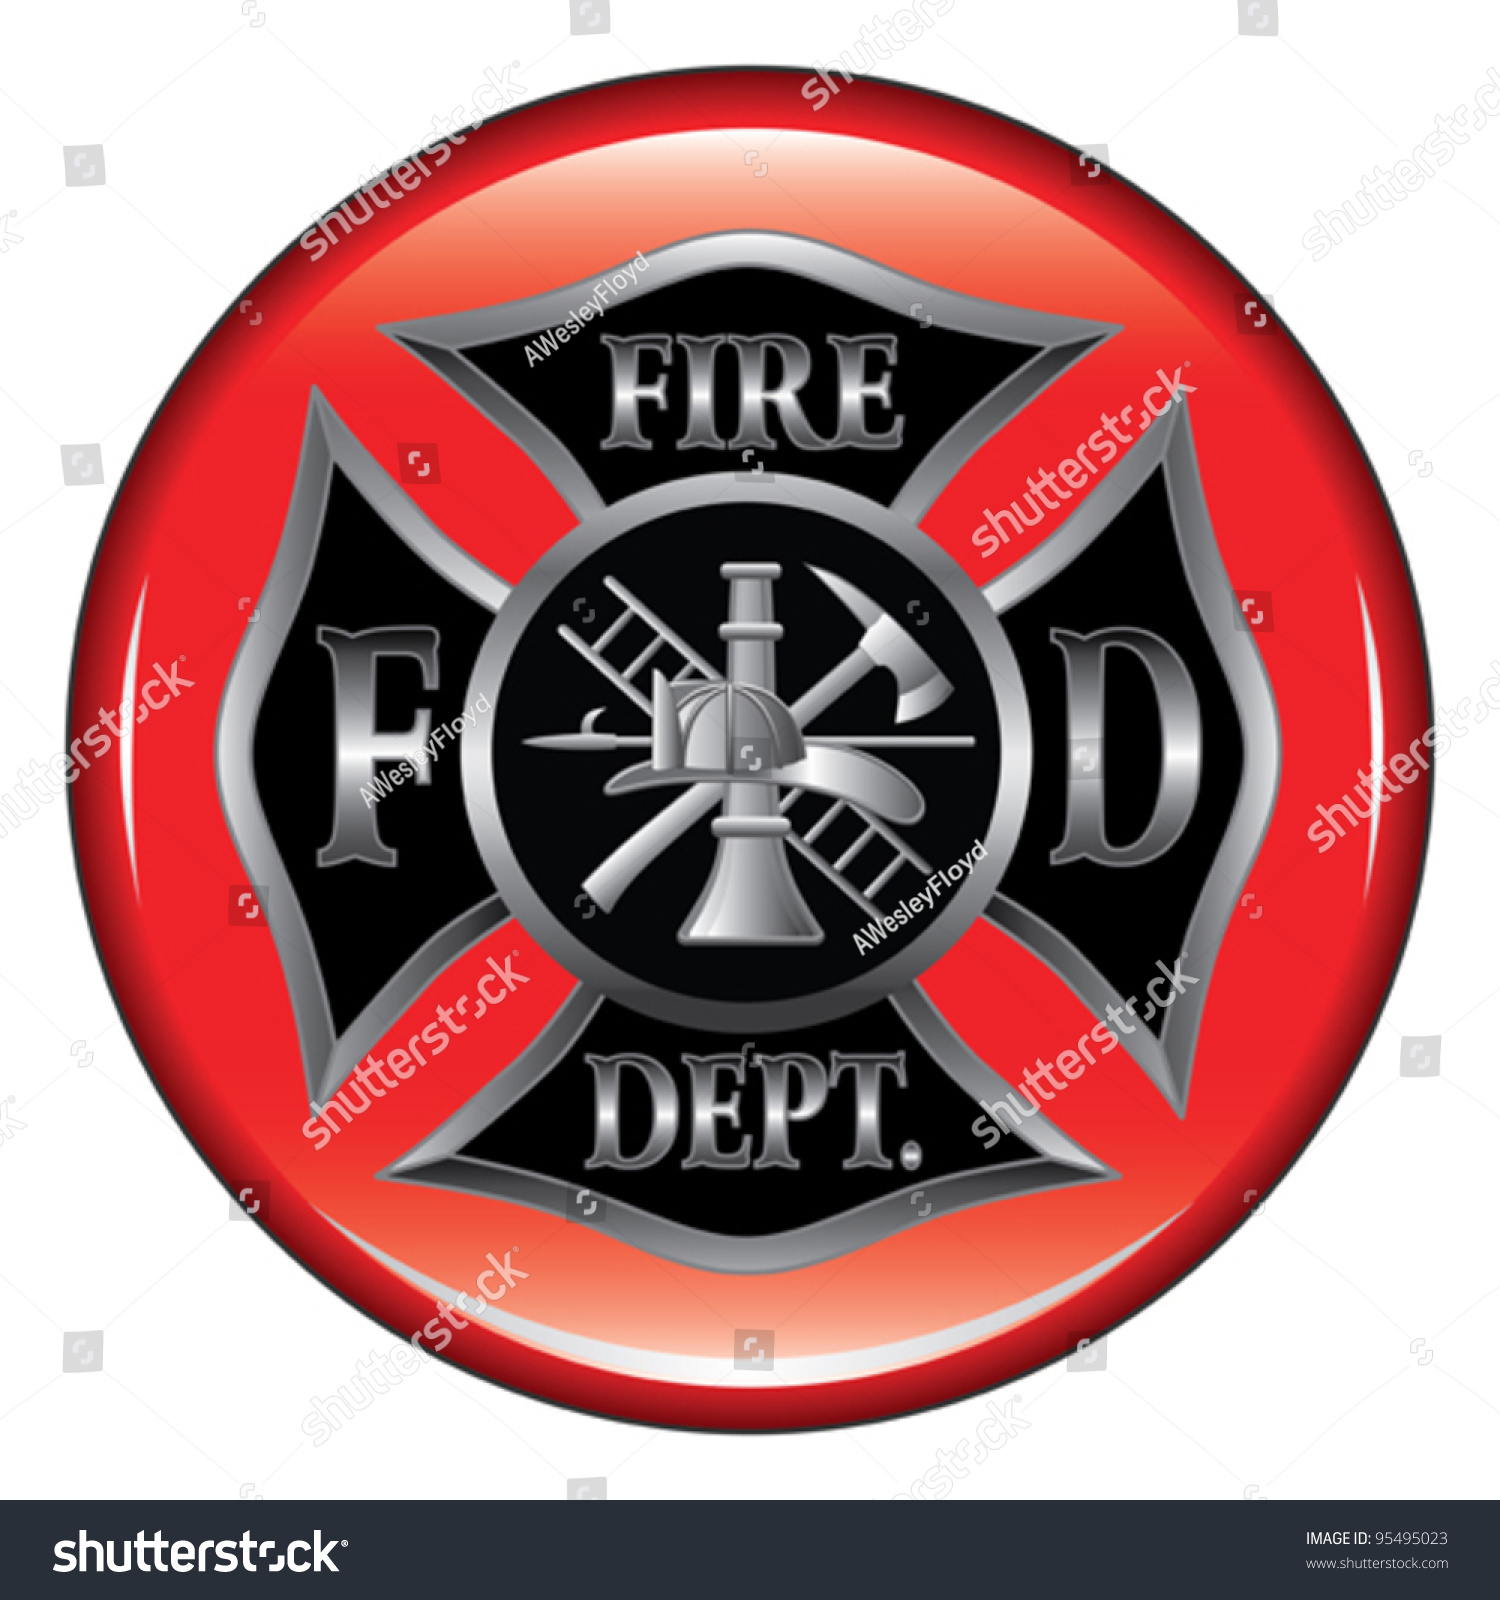 Royalty free fire department or firefighters 95495023 stock fire department or firefighters maltese cross symbol on a button illustration 95495023 buycottarizona Choice Image